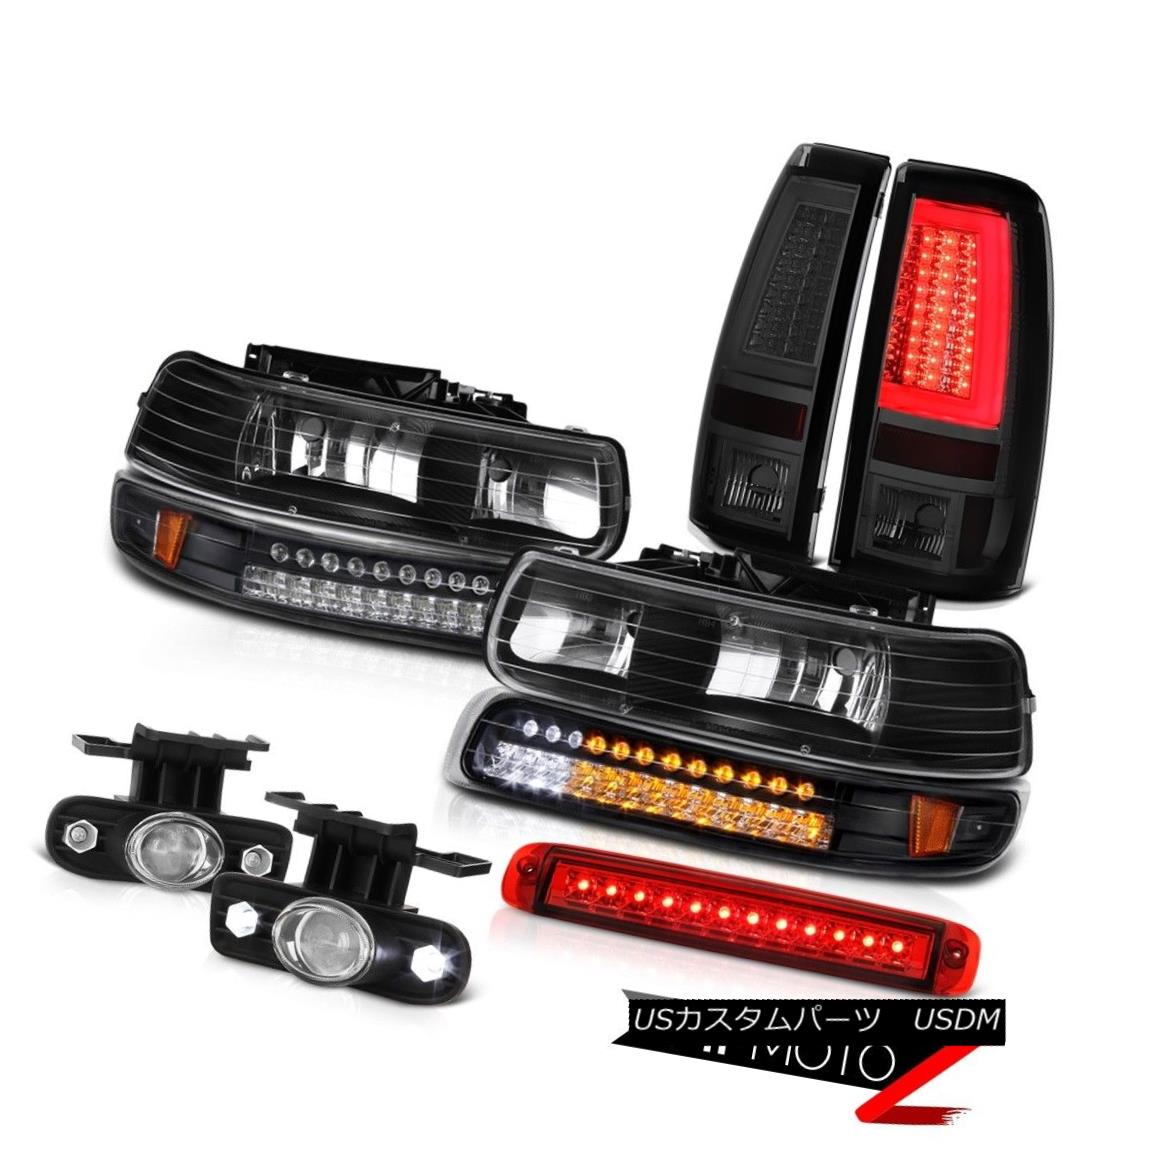 テールライト 99-02 Silverado 4WD Tail Lights Roof Cab Light Fog Signal Lamp